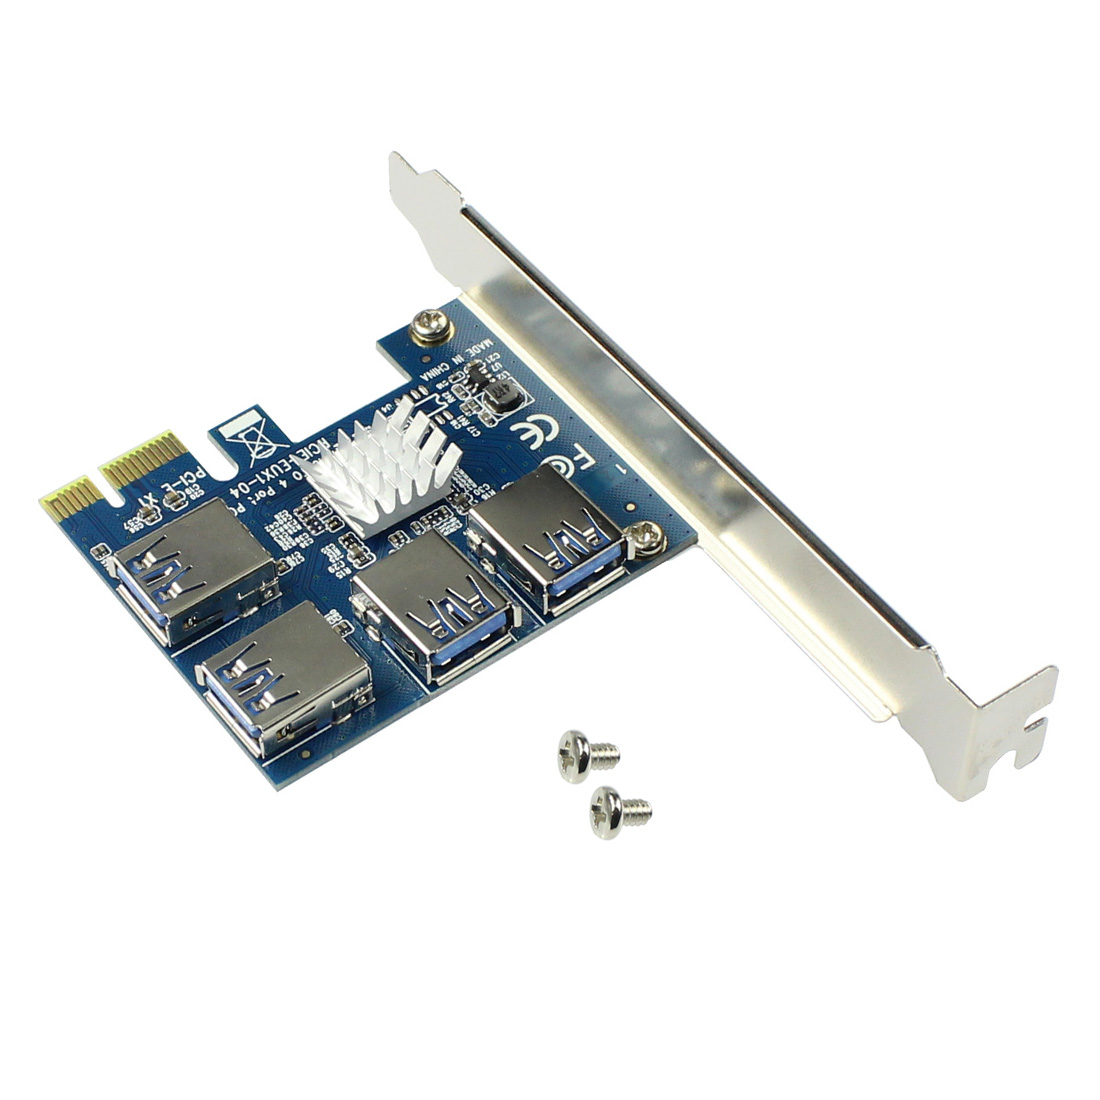 USB 3.0 PCI-E Express 1x to 16x Extender Riser Card Adapter Pcie 1 to 4 USB Convertor Graphics Video card for Miner BTC Litcoin 2